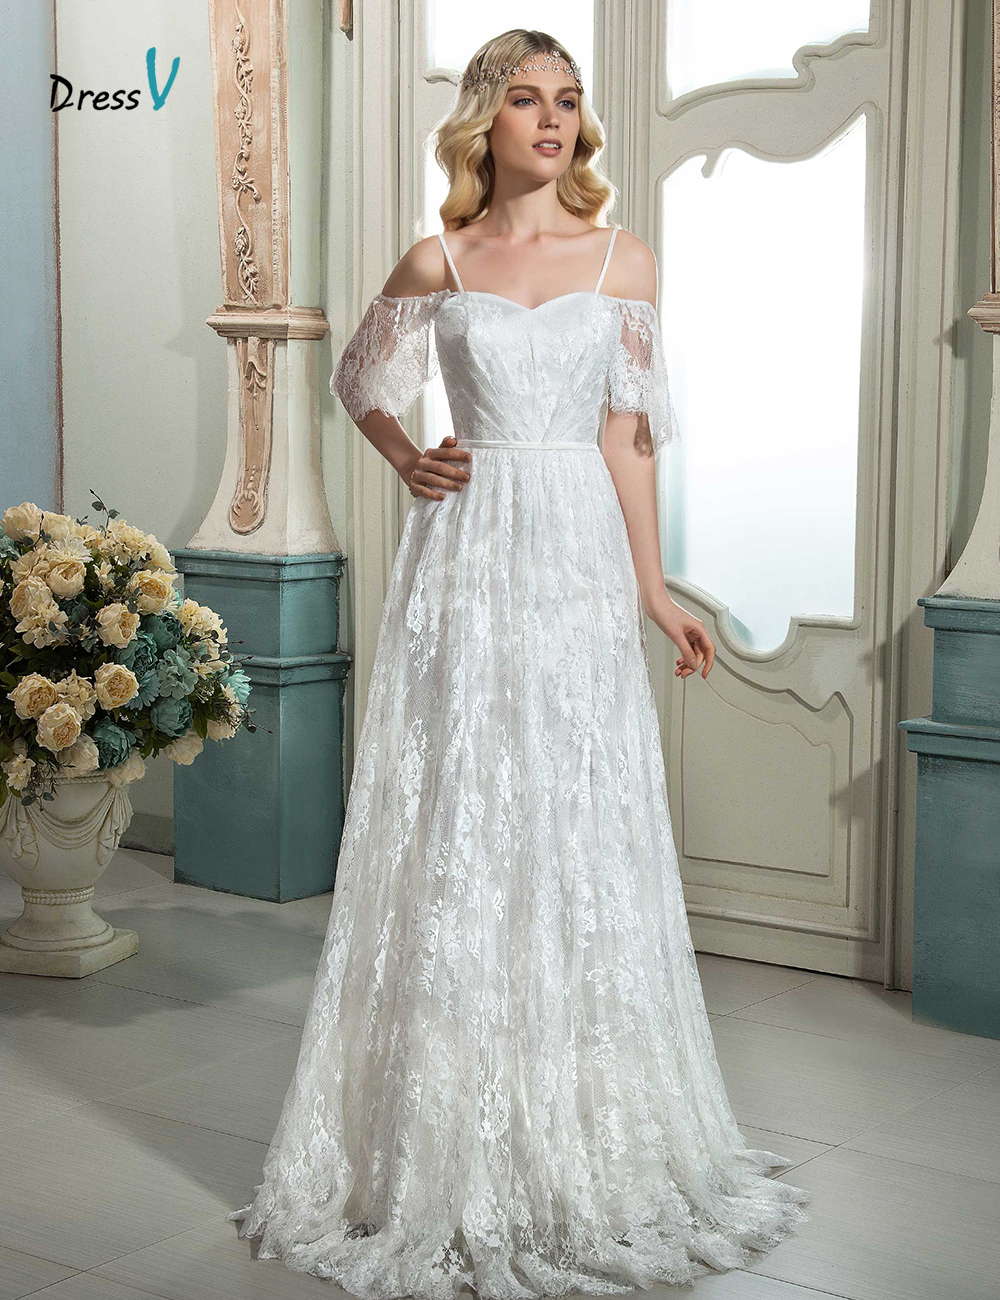 wedding dresses ivory cheap ivory wedding dresses free shipping cheap aline wedding dresses ivory black half sleeve lace up tea length applique lace scoop in stock sheer bridal gowns